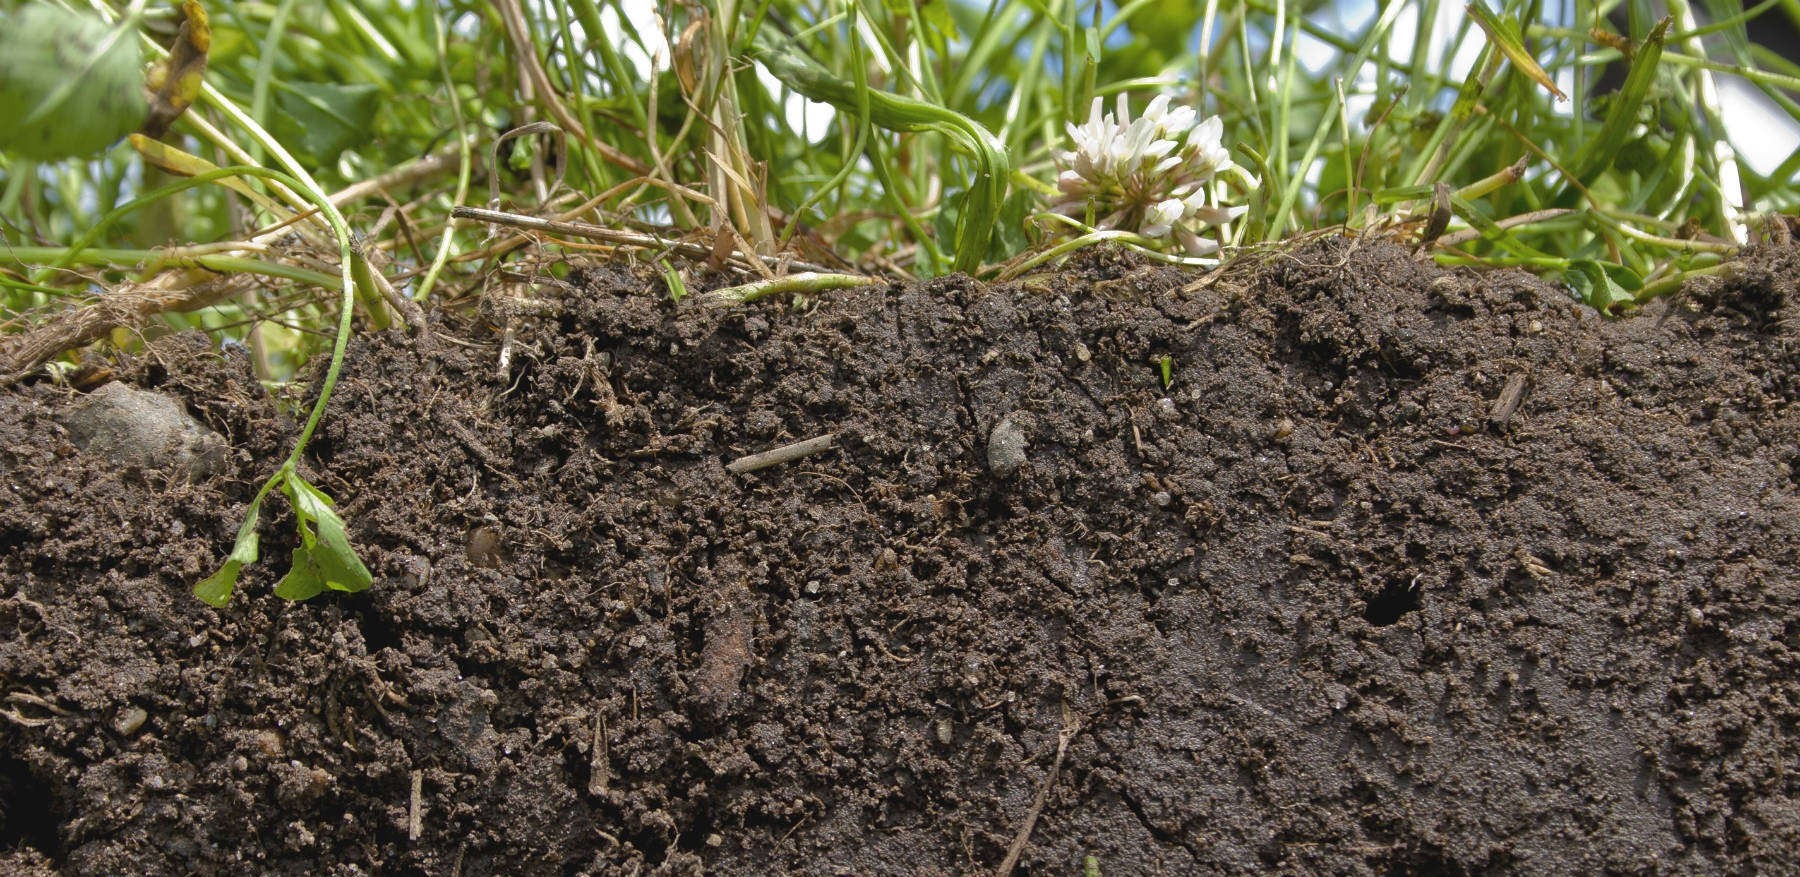 photo of healthy soil and soil health